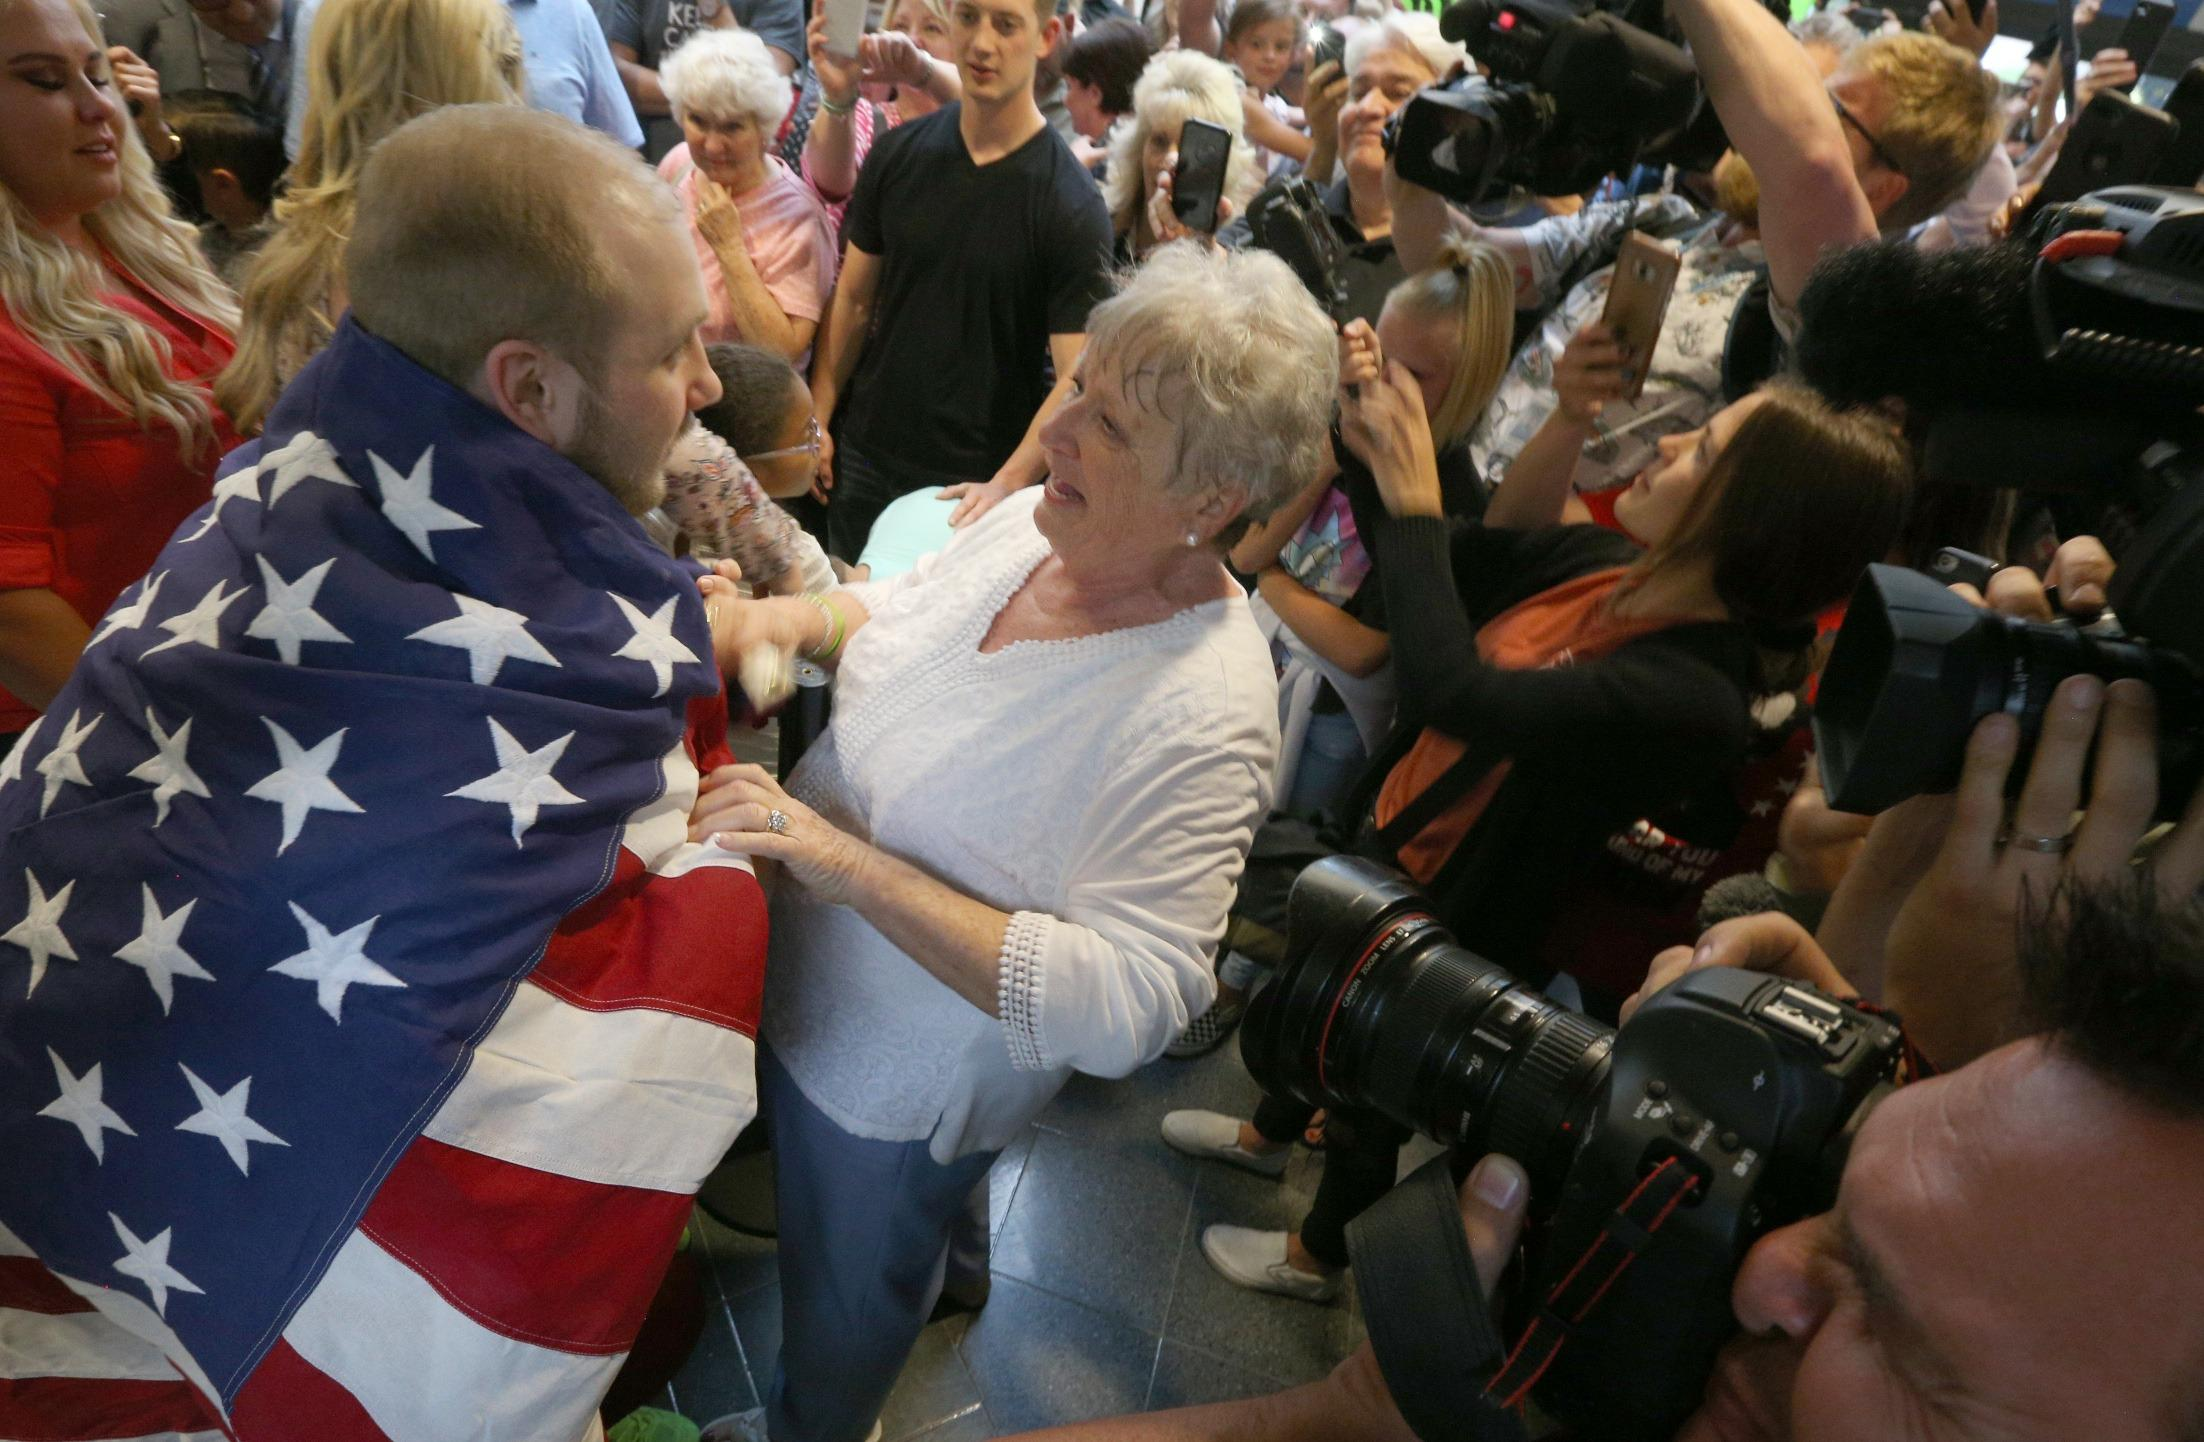 7aac4d419 Josh Holt returns home to Utah, days after being freed from Venezuelan  prison